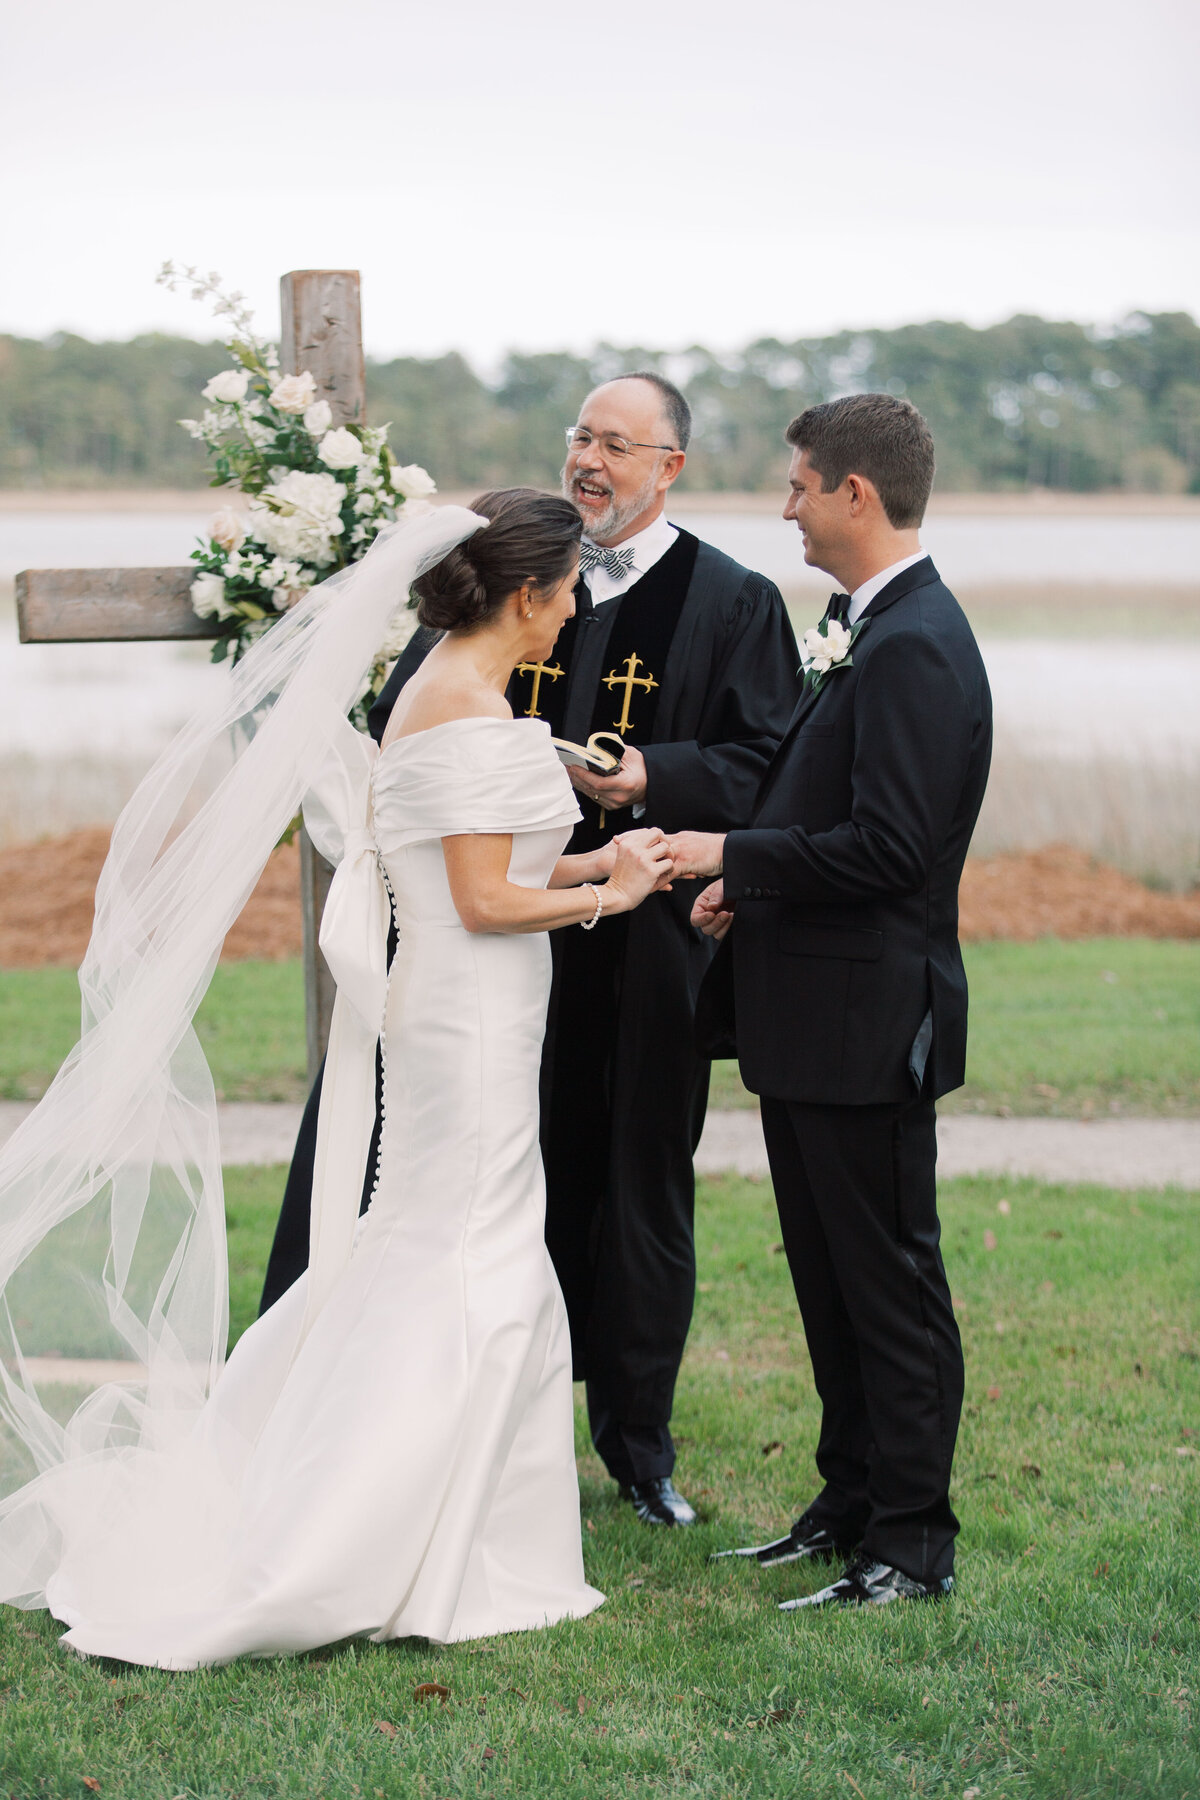 Powell_Oldfield_River_Club_Bluffton_South_Carolina_Beaufort_Savannah_Wedding_Jacksonville_Florida_Devon_Donnahoo_Photography_0628